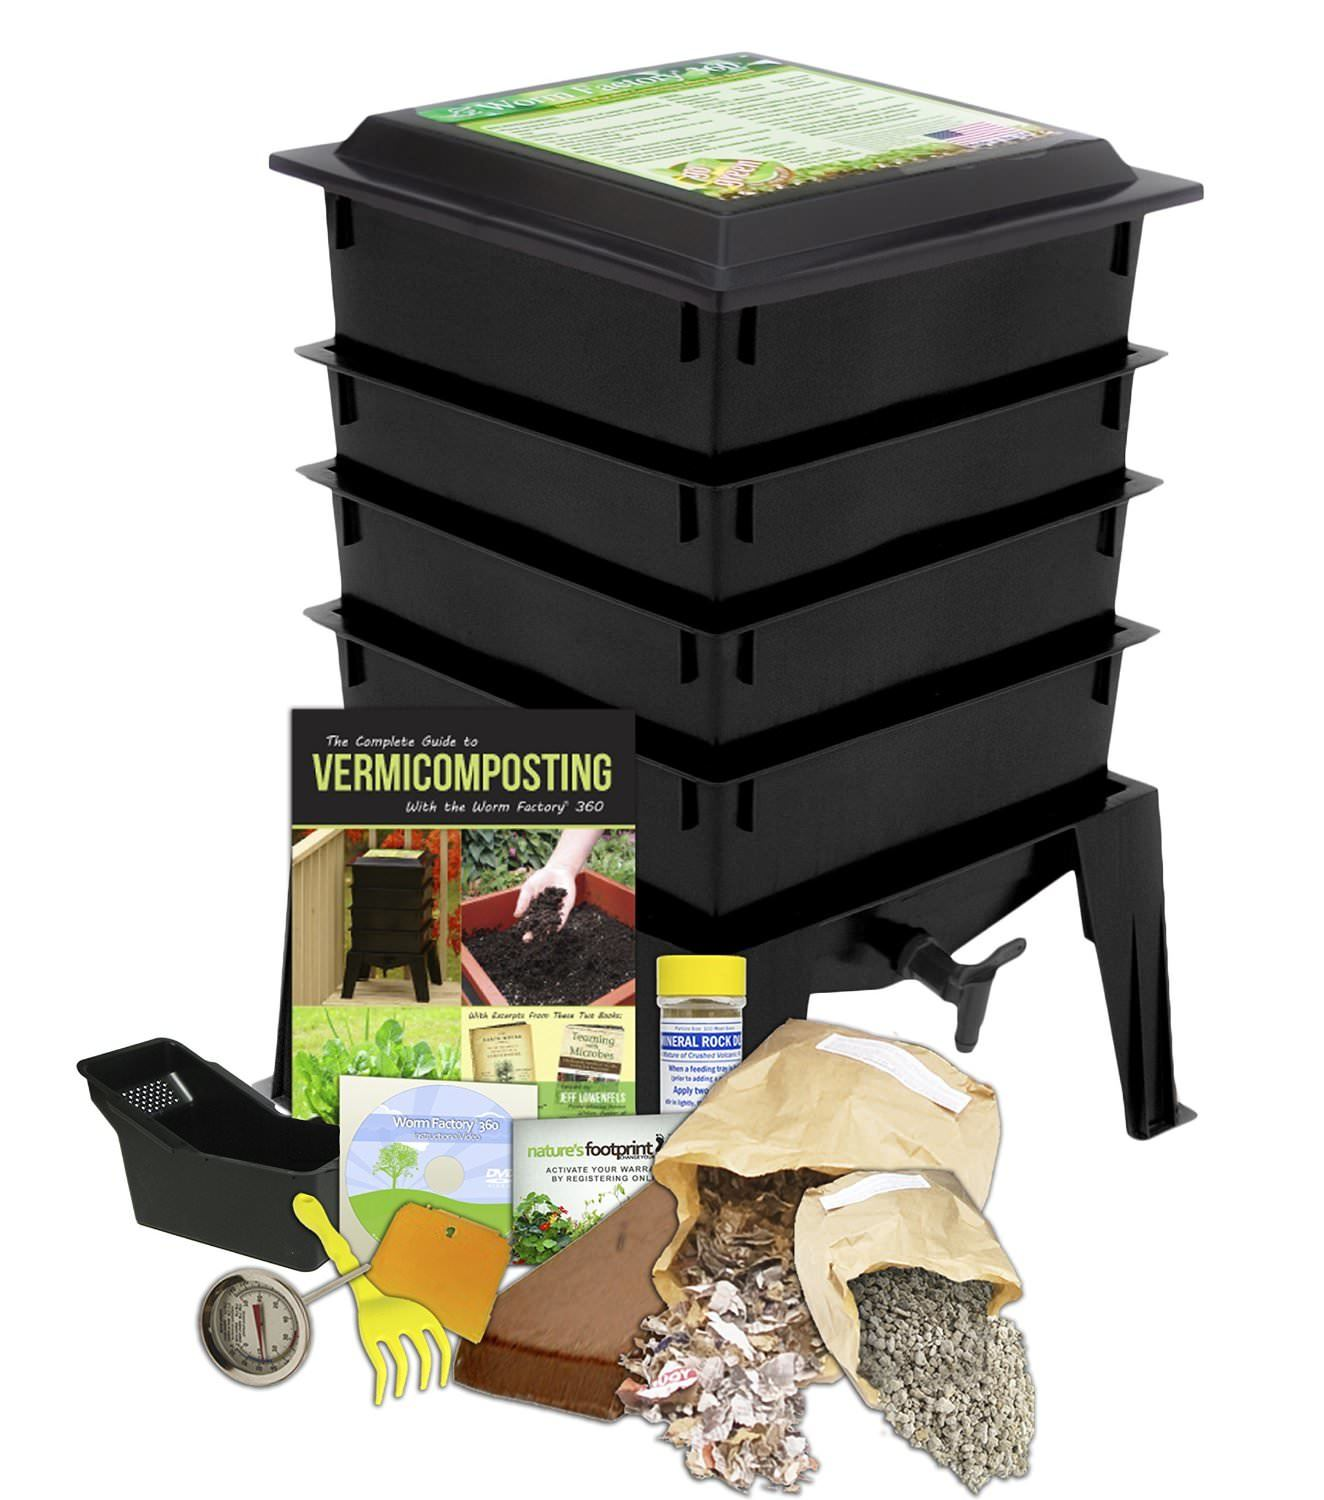 Worm Factory 360 Worm Composting Bin - Live Worm Farm Starter Kit on Amazon